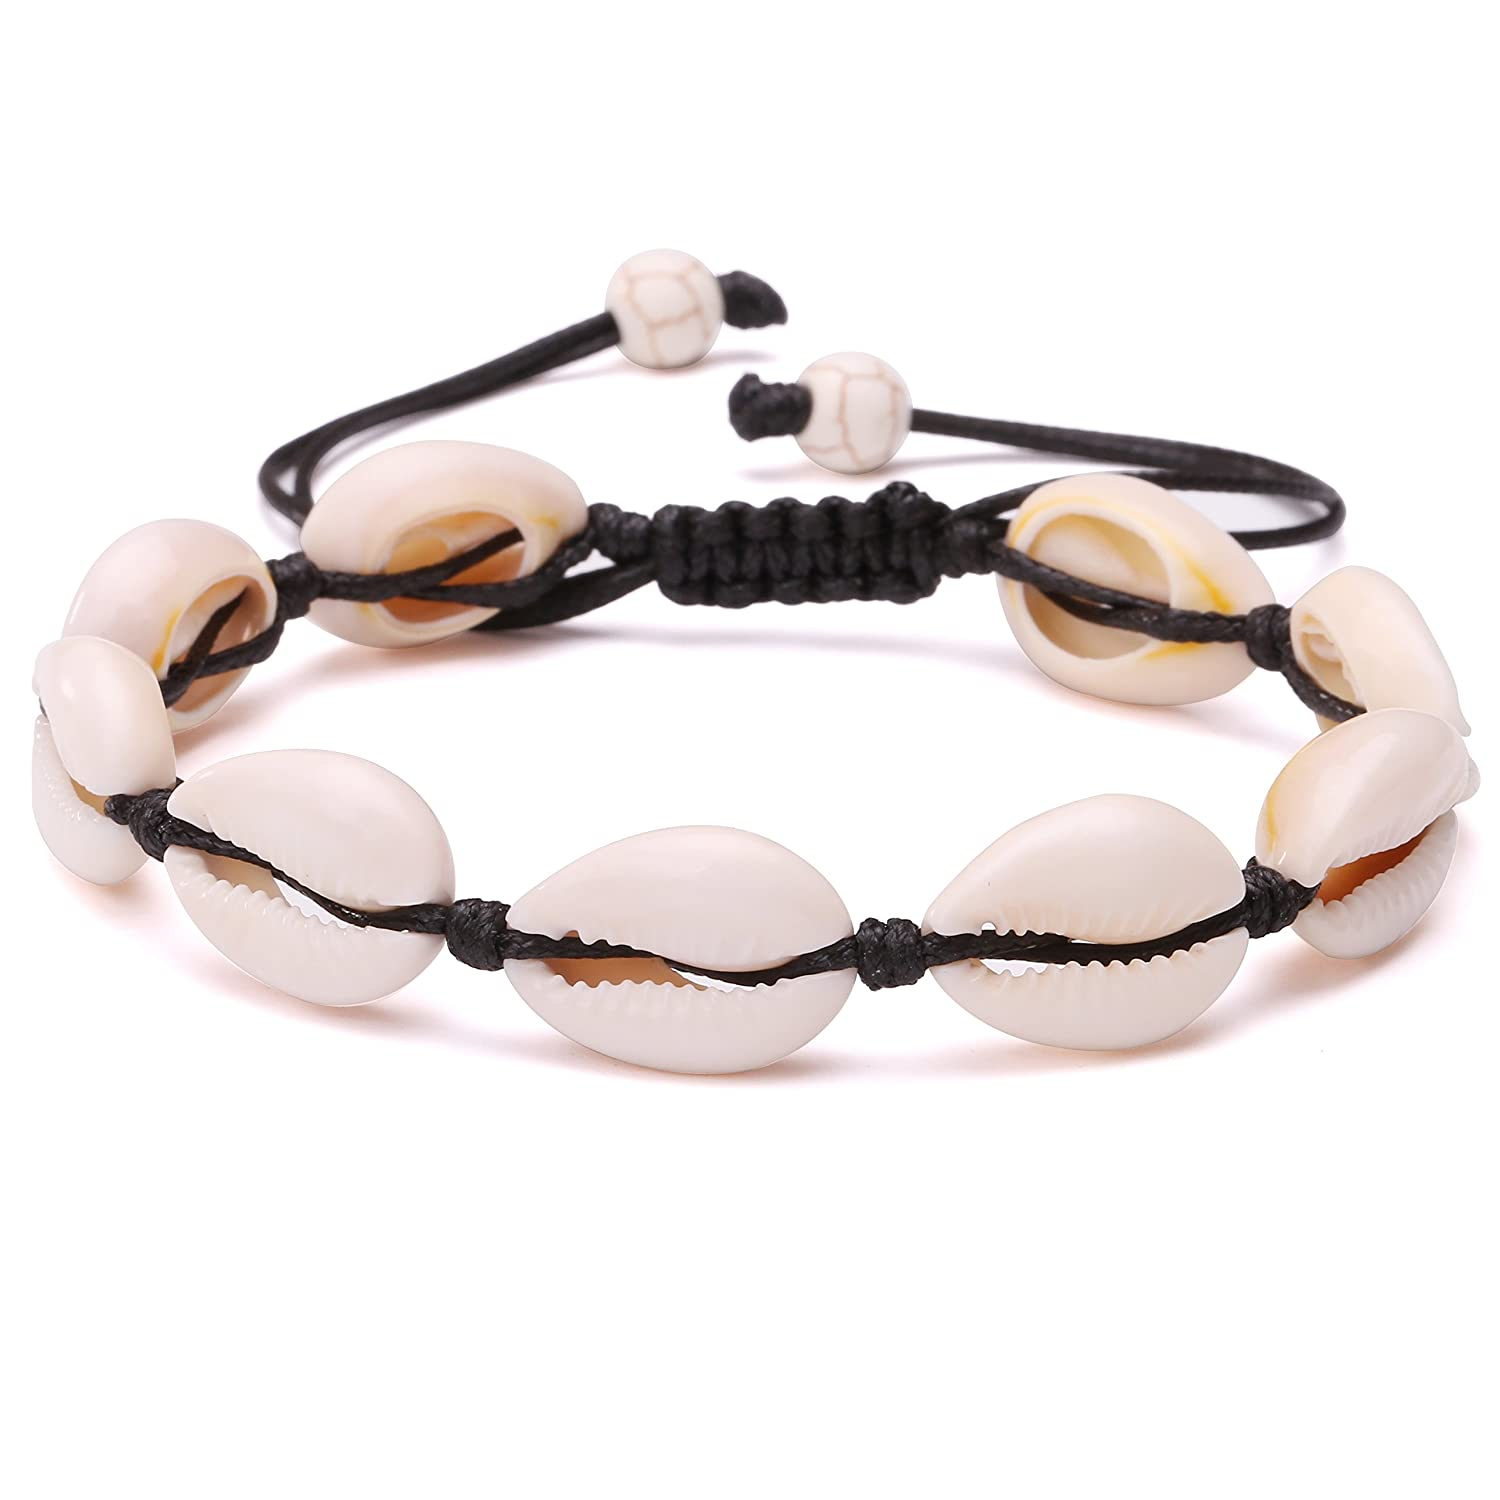 548441f306ab5 POTESSA Natural Cowrie Beads Shell Anklet Bracelet Handmade Beach Foot  Jewelry Hawaiian Jamaican Style Adjustable for Women Unisex